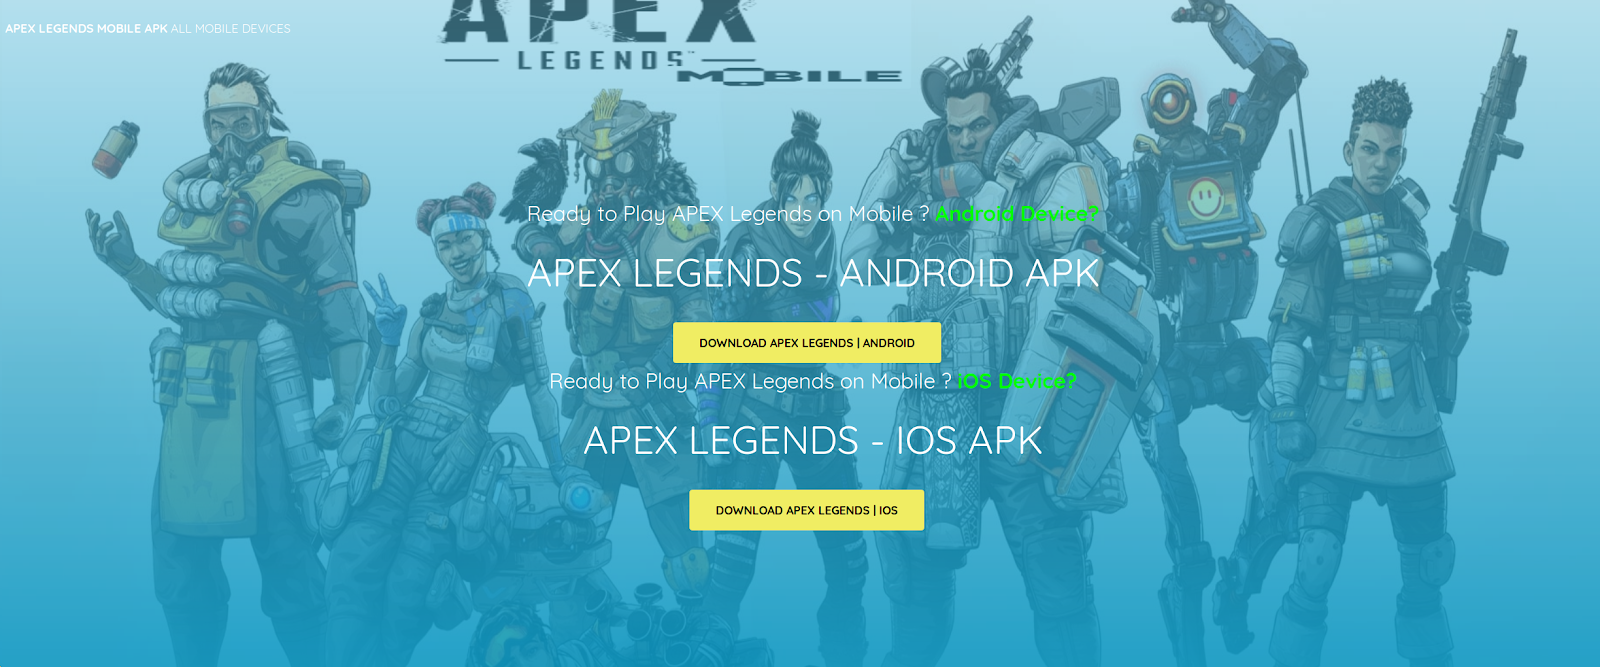 Apex Legends for Android: a Fake App could Compromise your Smartphone